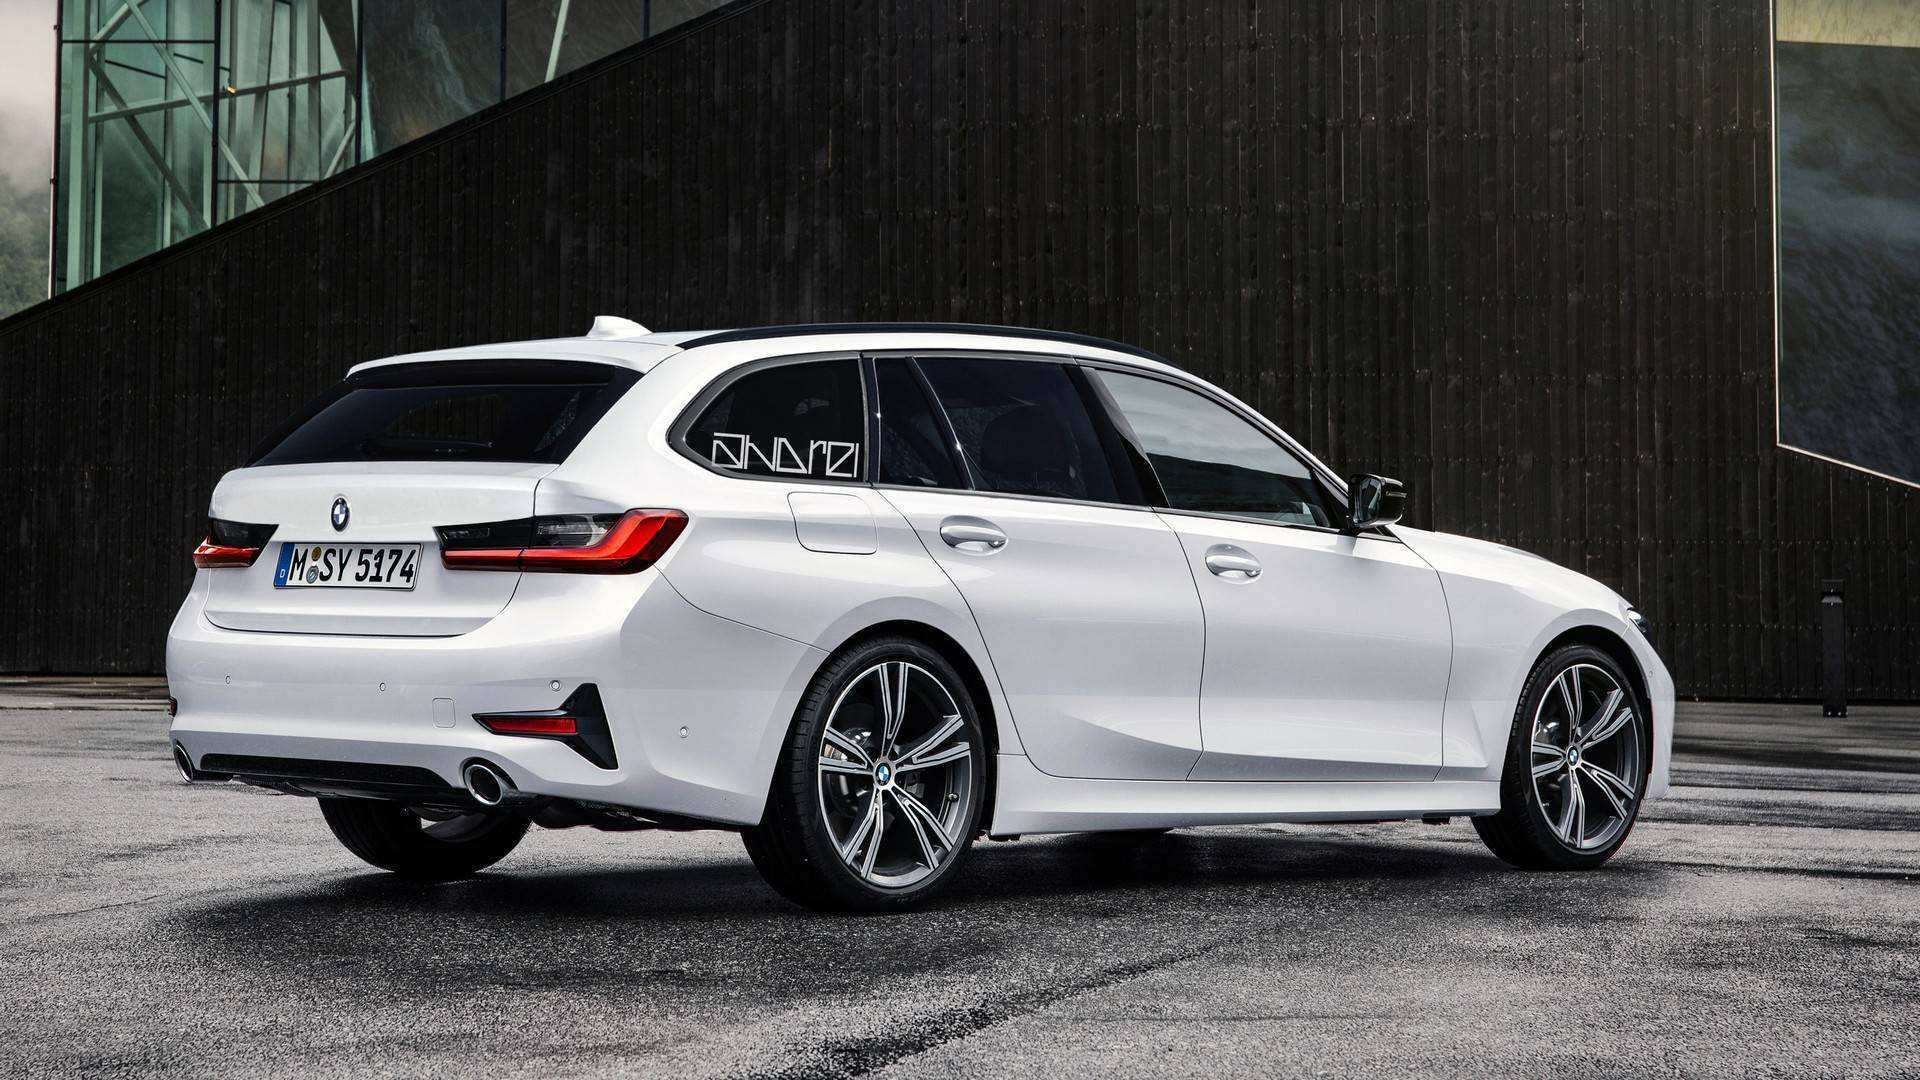 99 The 2020 Spy Shots BMW 3 Series Exterior And Interior